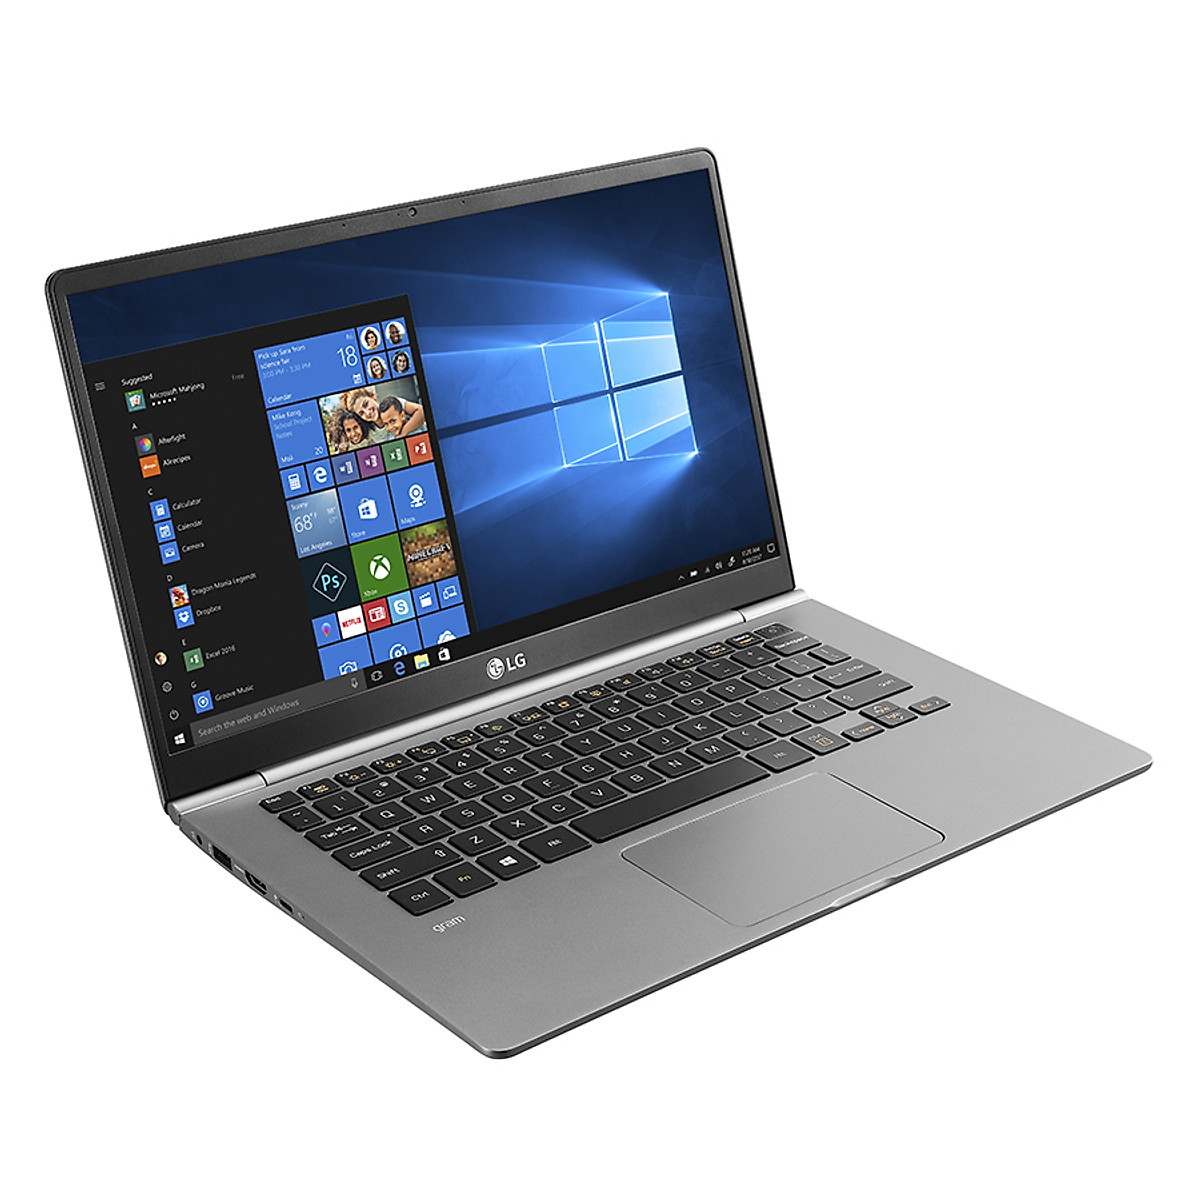 "Review Laptop LG Gram 2018 14Z980-G 14"" (i5/8GB/256GB)"